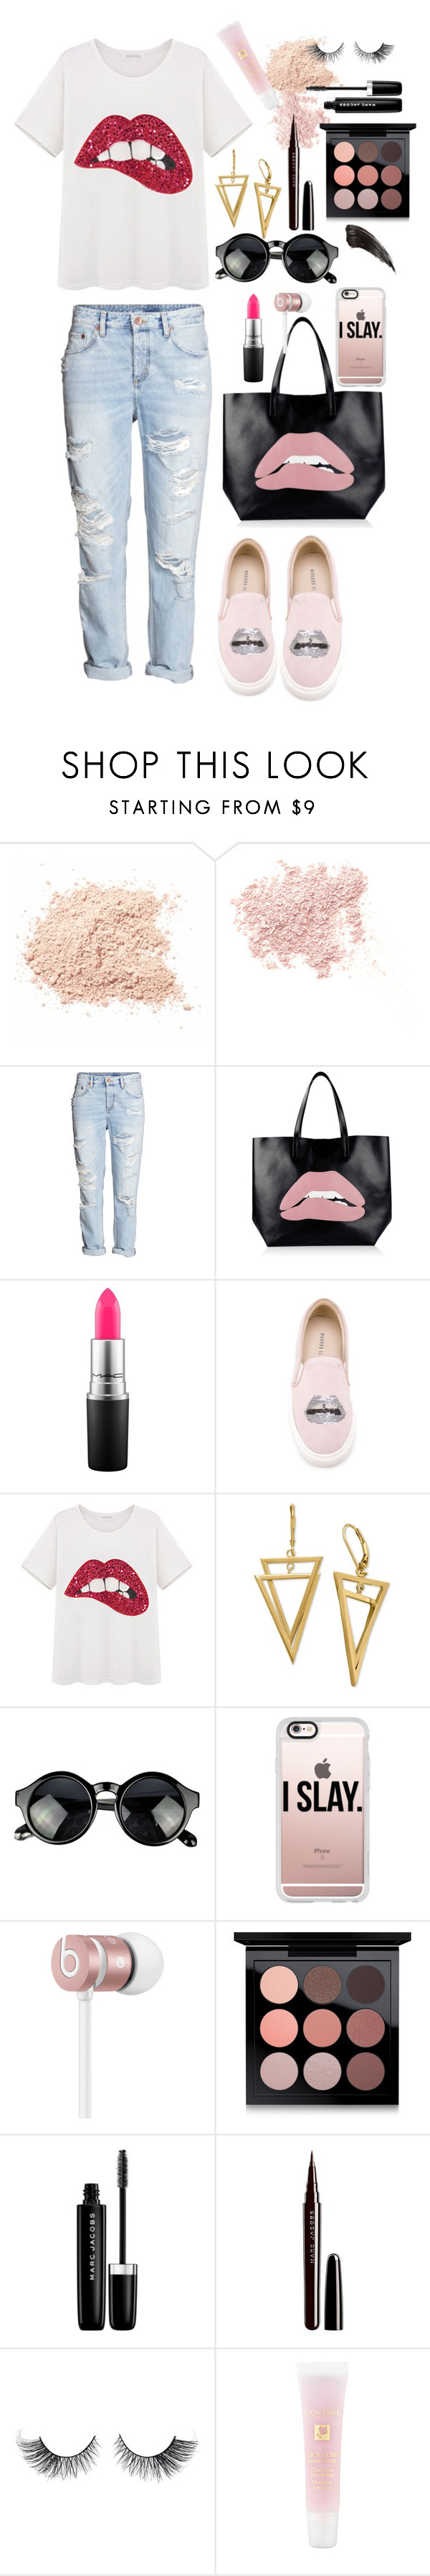 """Just chill!."" by kornyy18 ❤ liked on Polyvore featuring Bare Escentuals, H&M, RED Valentino, MAC Cosmetics, Markus Lupfer, Casetify, Beats by Dr. Dre, Marc Jacobs and Lancôme"